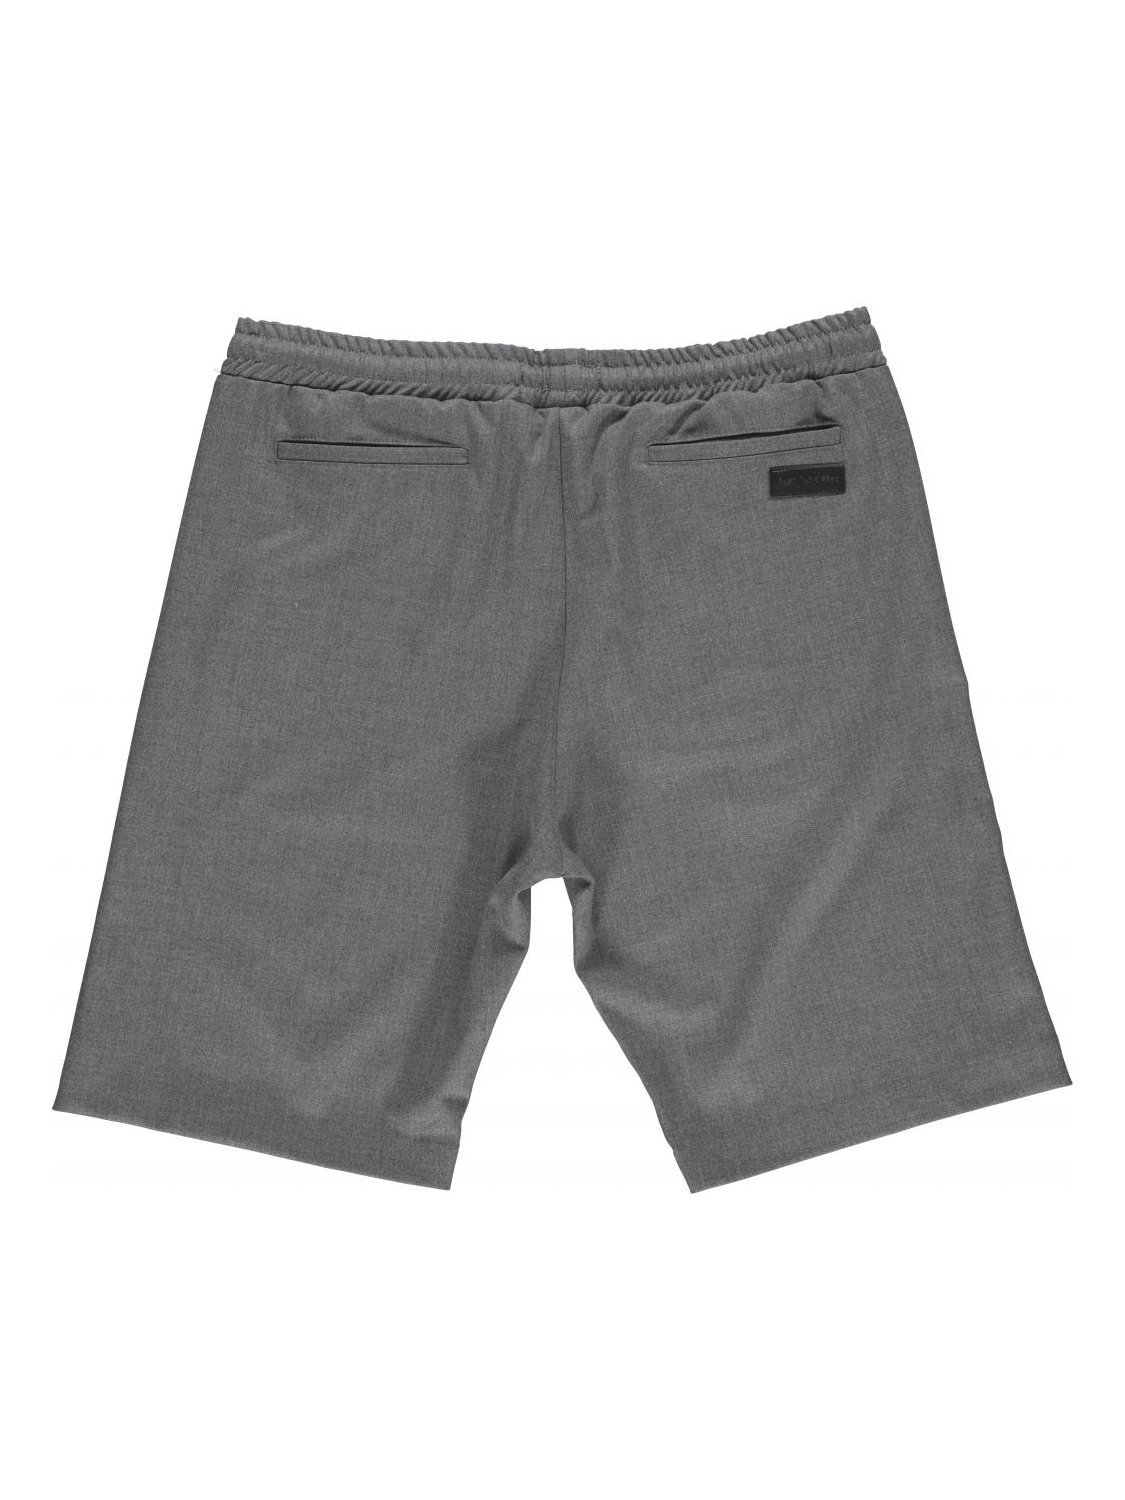 just junkies shorts flex 2.0 Mid Grey JJ1252 | GATE 36 Hobro